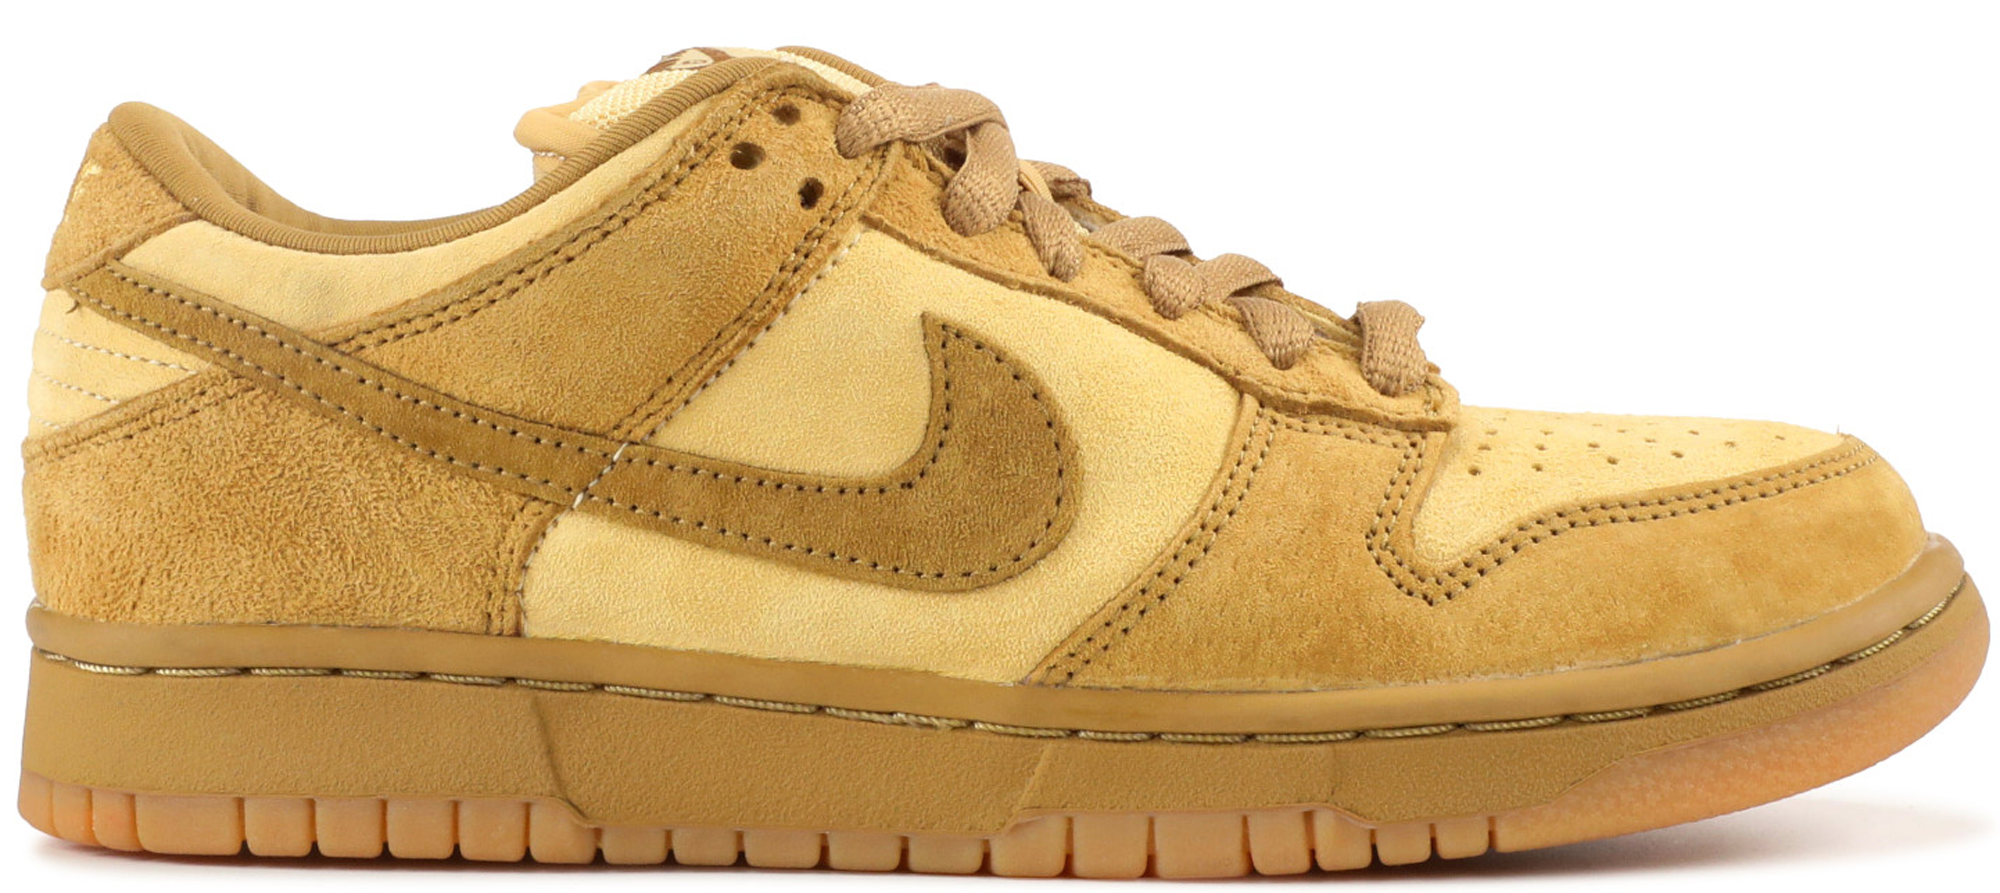 Nike SB Dunk Low Reese Forbes Wheat